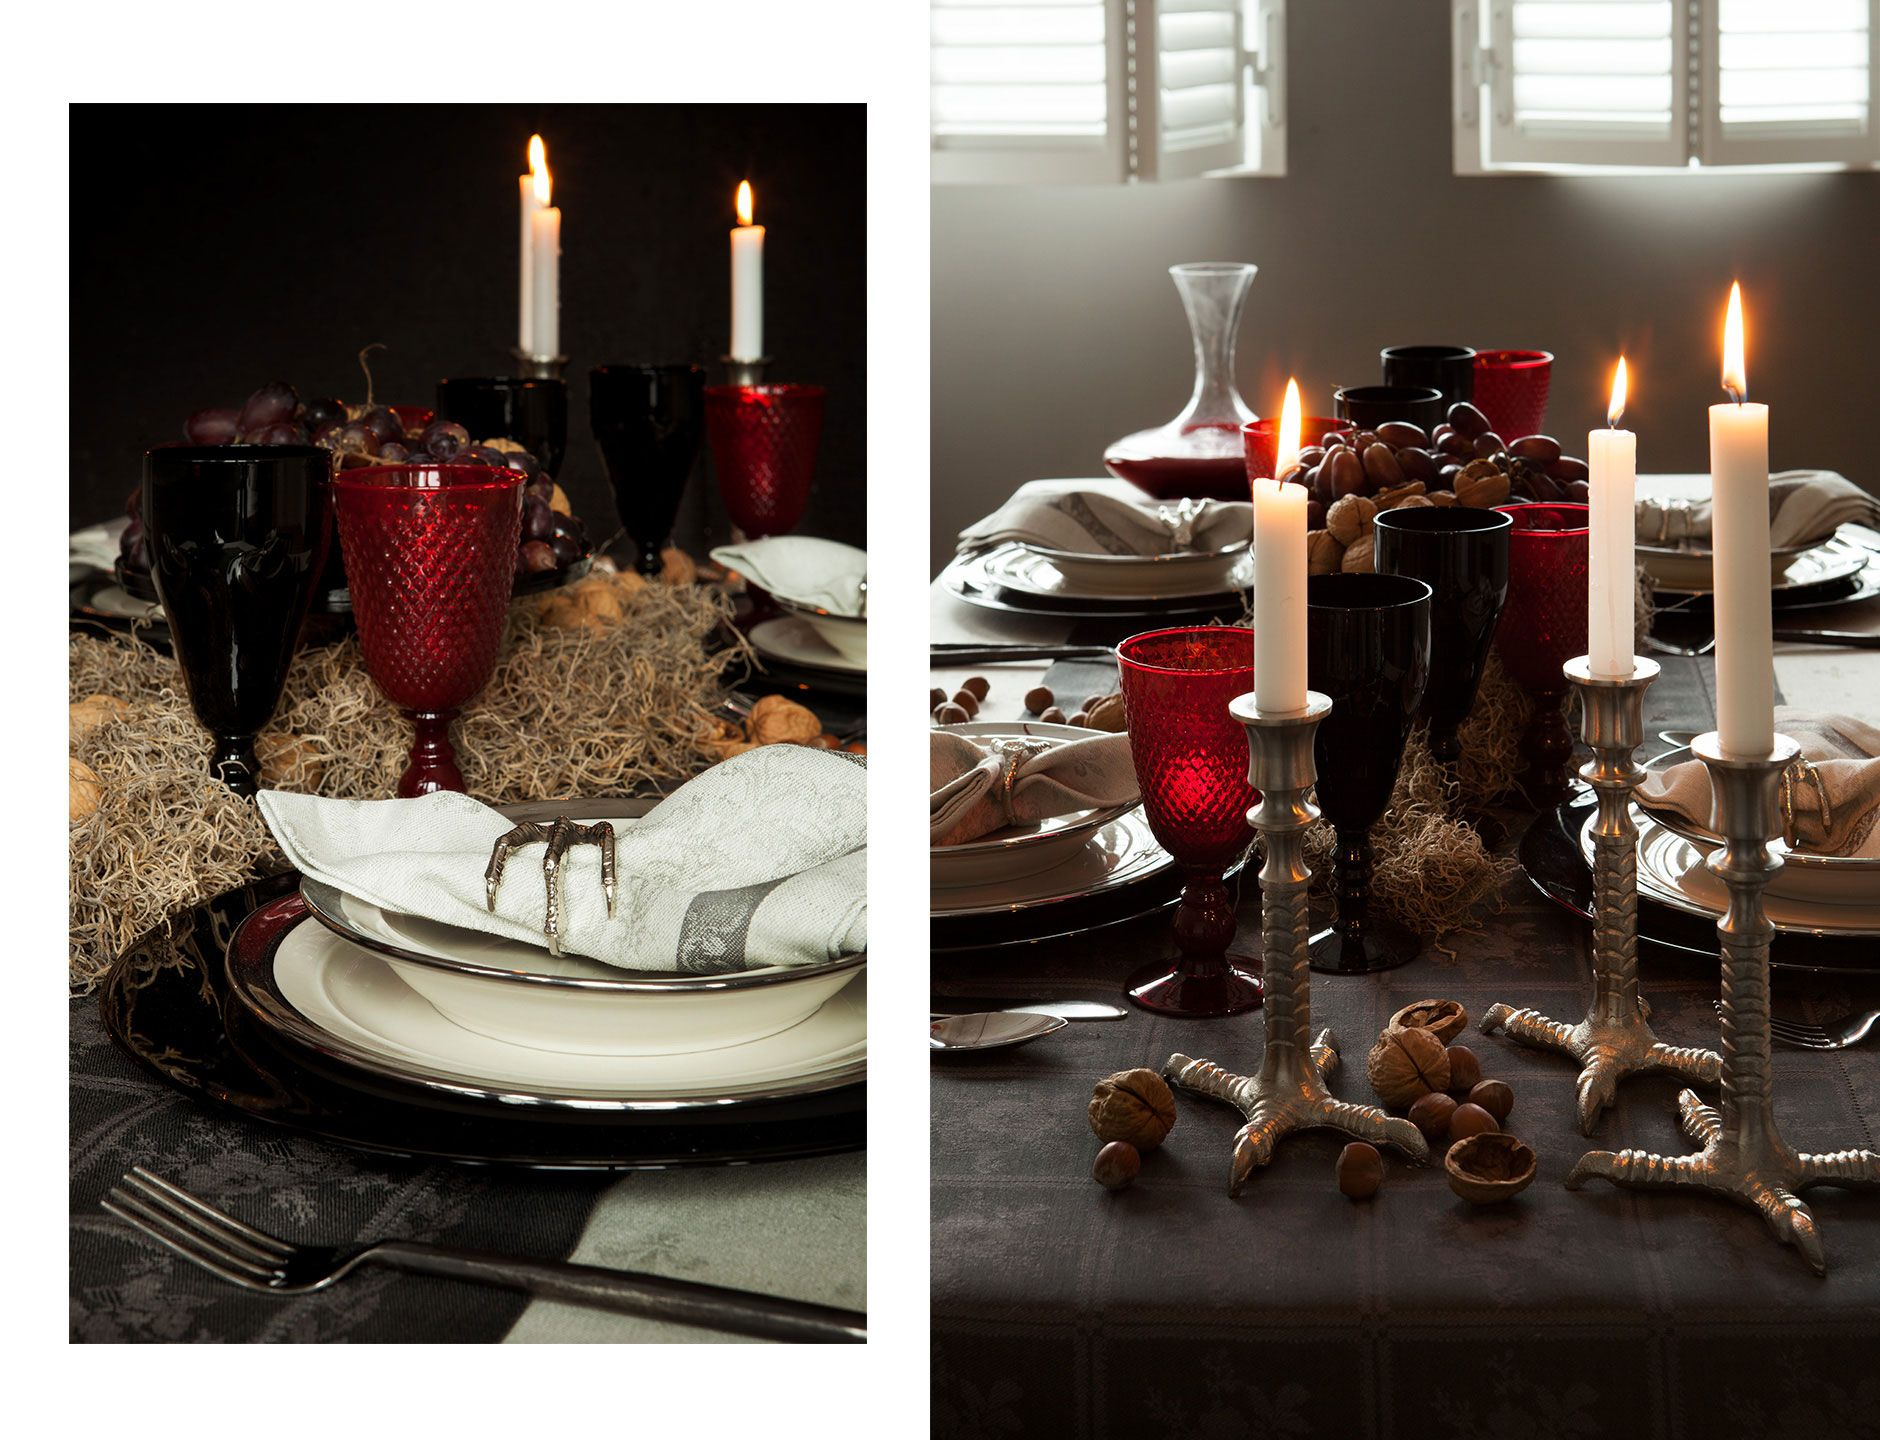 Halloween Decoration Interieur Zara Home Design Love The Bird Claws As Napkin Rings And The